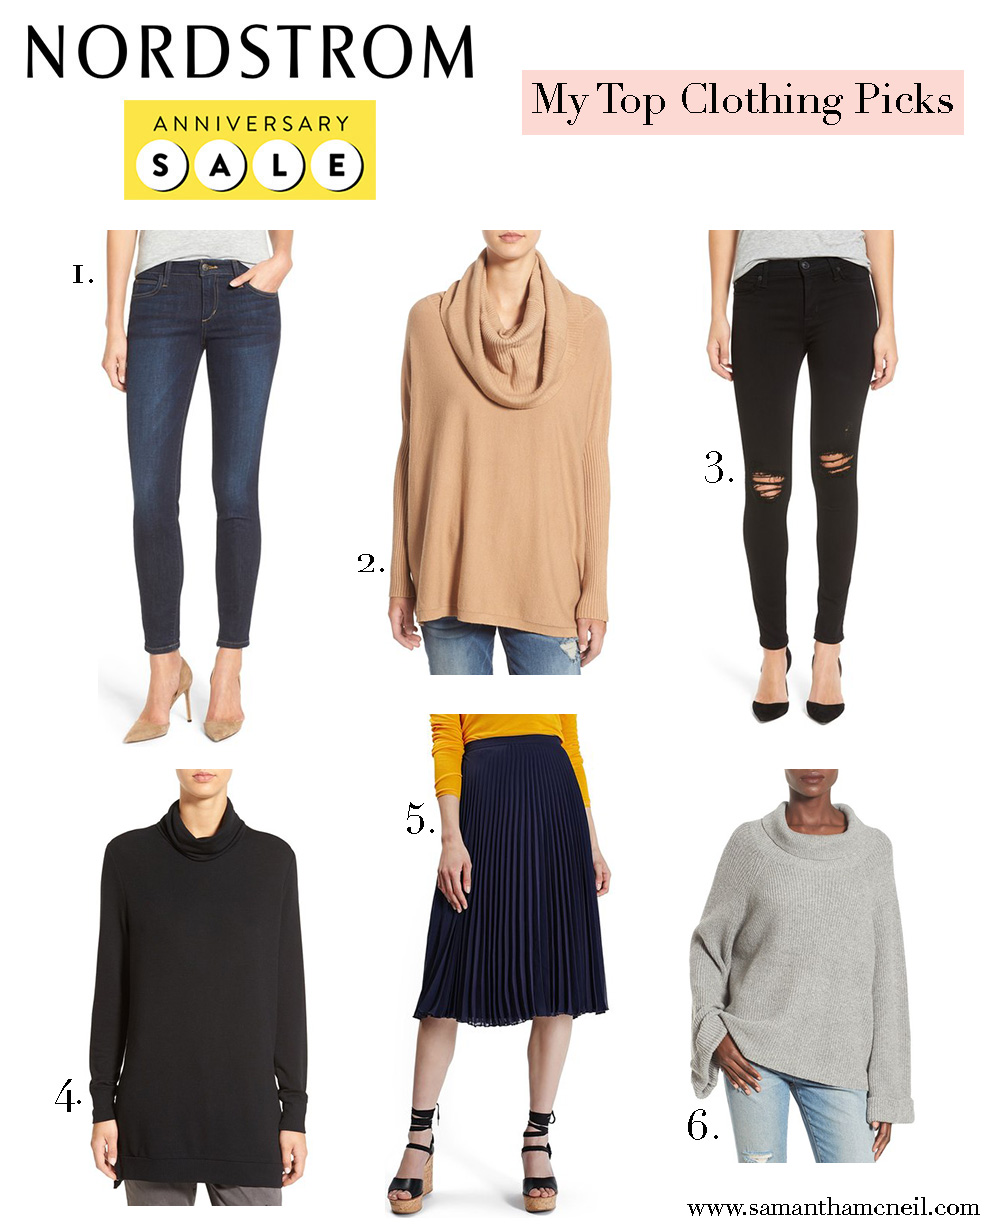 Nordstrom-Anniversary-Sale-My-Top-Sweater-and-Denim-Picks